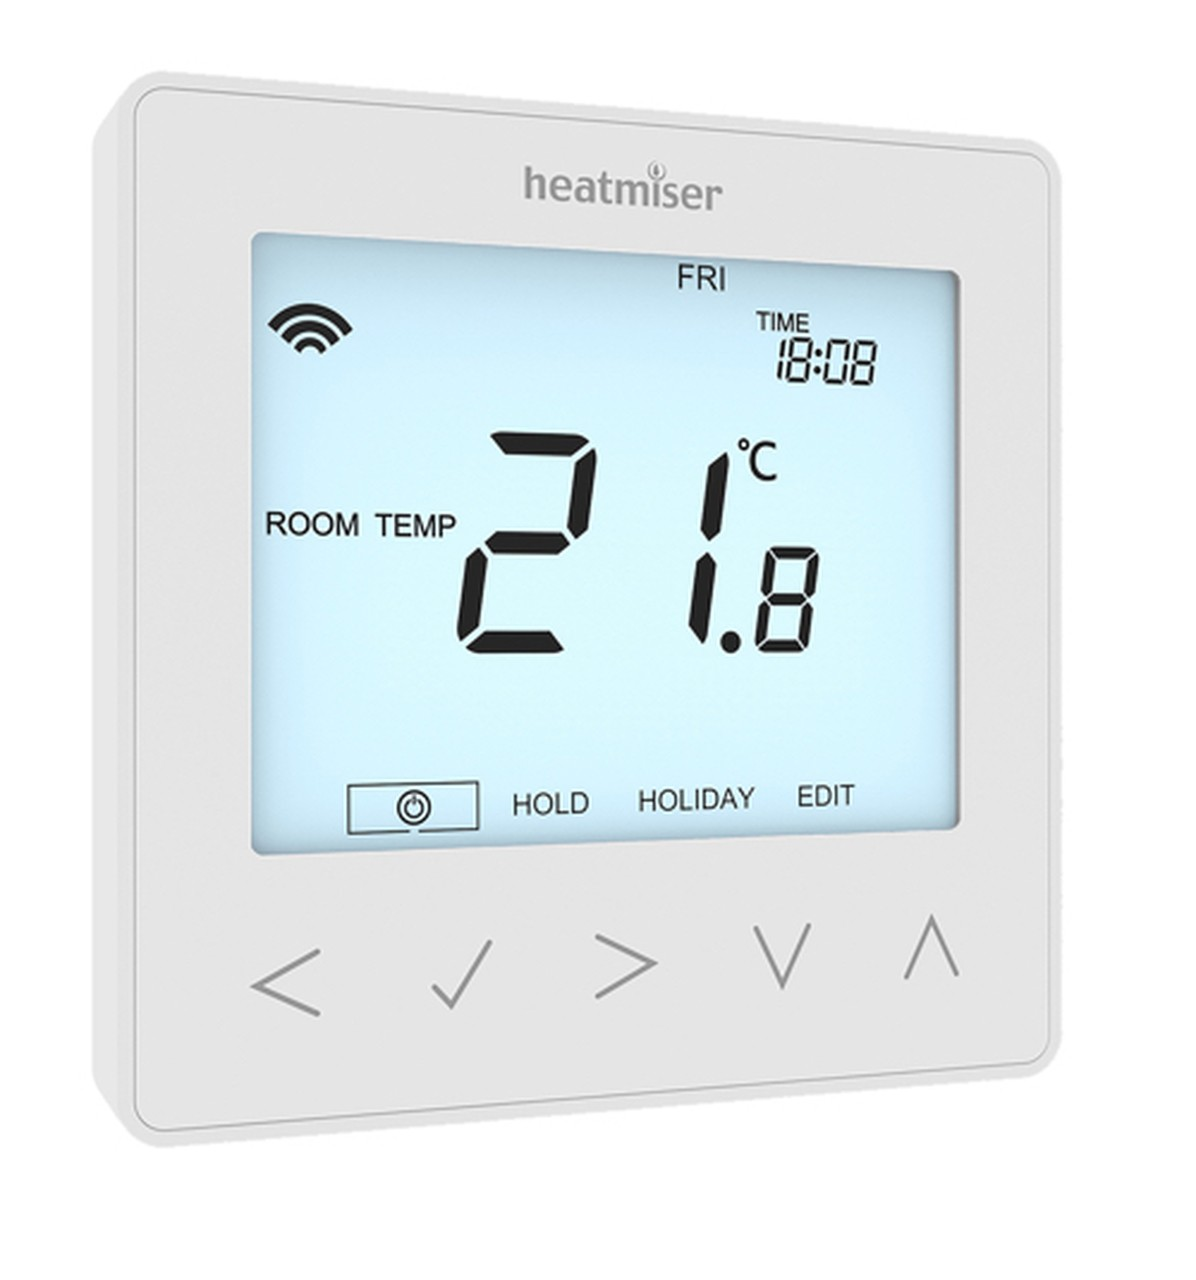 Image 1 of Heatmiser neoStat 12v - Programmable Thermostat V2